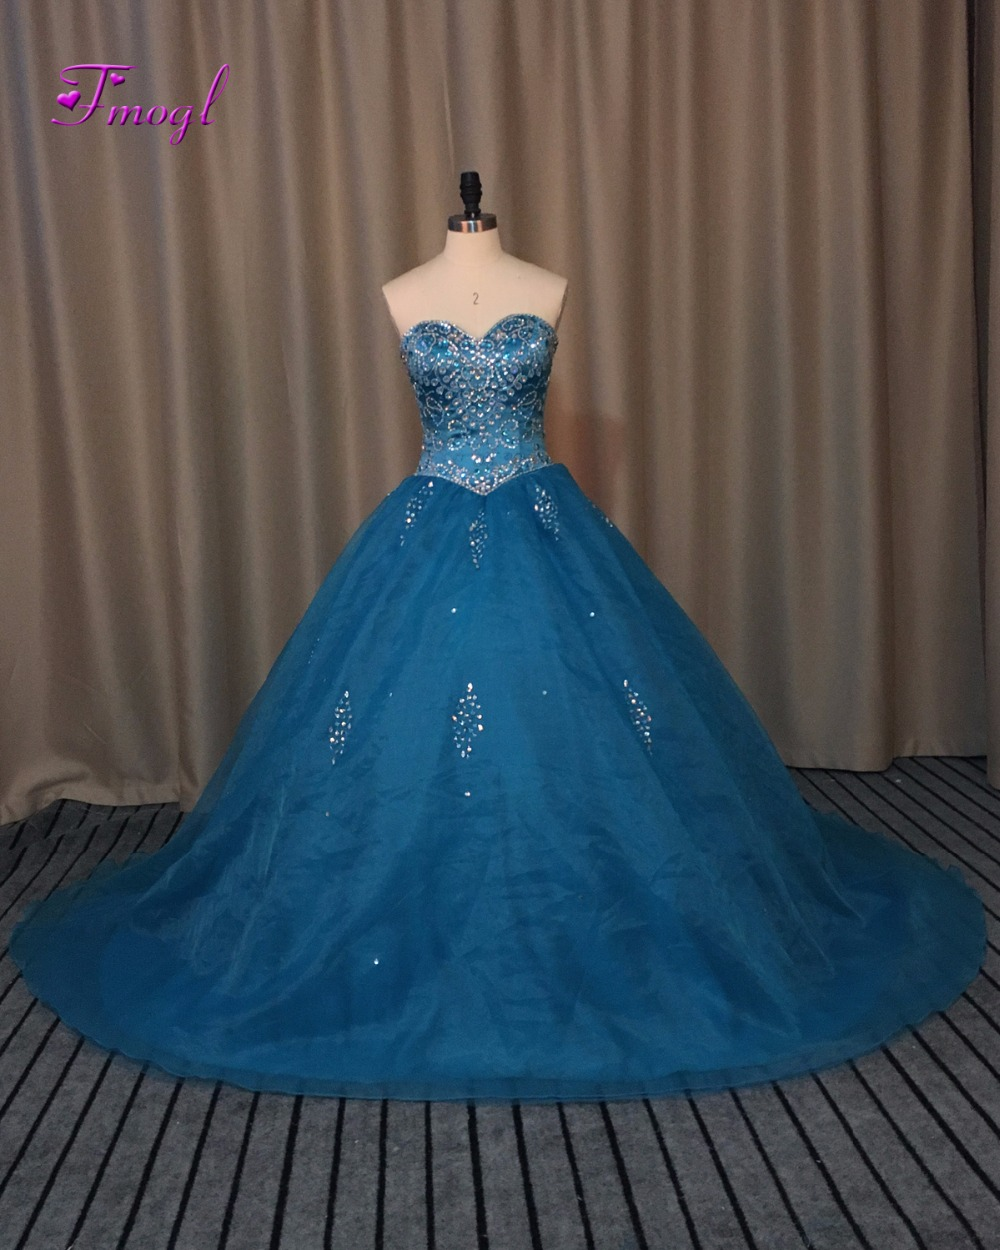 82efe8b10b7 Fmogl Luxury Beaded Crystal Princess Quinceanera Dresses 2019 Graceful  Organza Royal Blue Ball Gown Debutante Dress For 15 anos-in Quinceanera  Dresses from ...